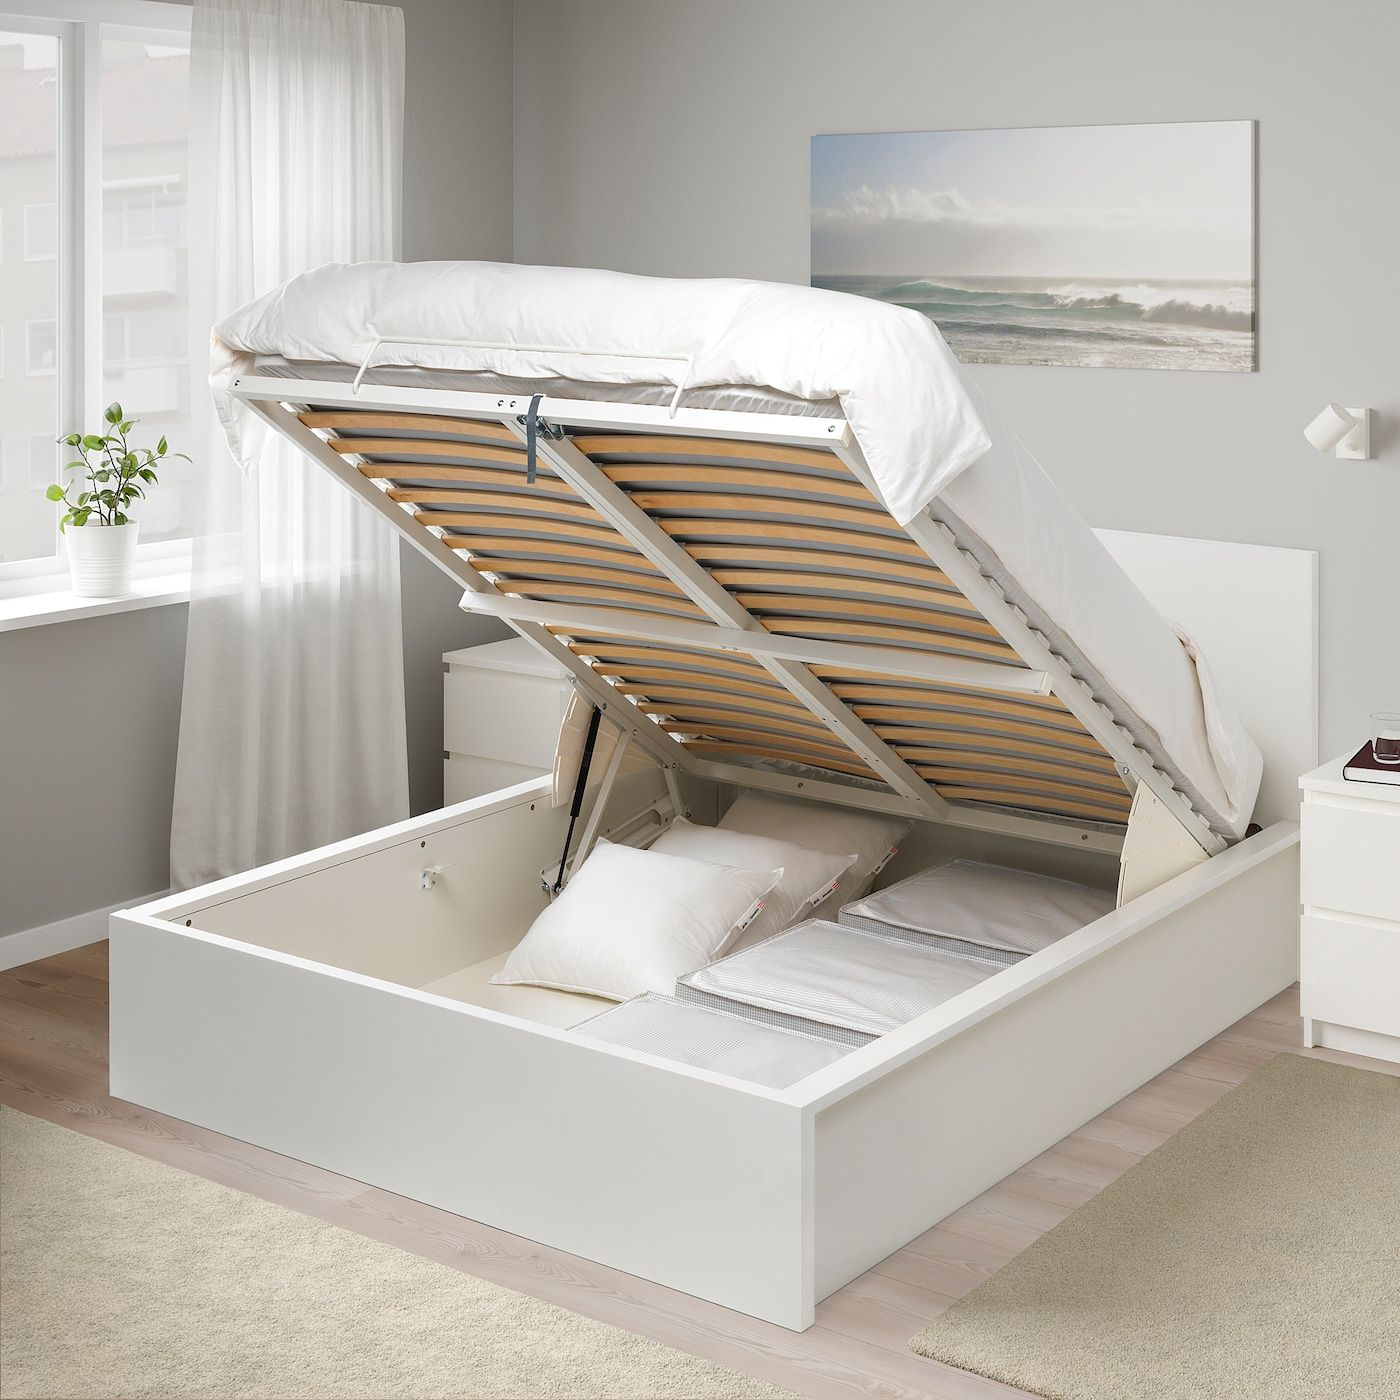 Pin by Adriella Marcus on Tiny house in 2020 Bed frame